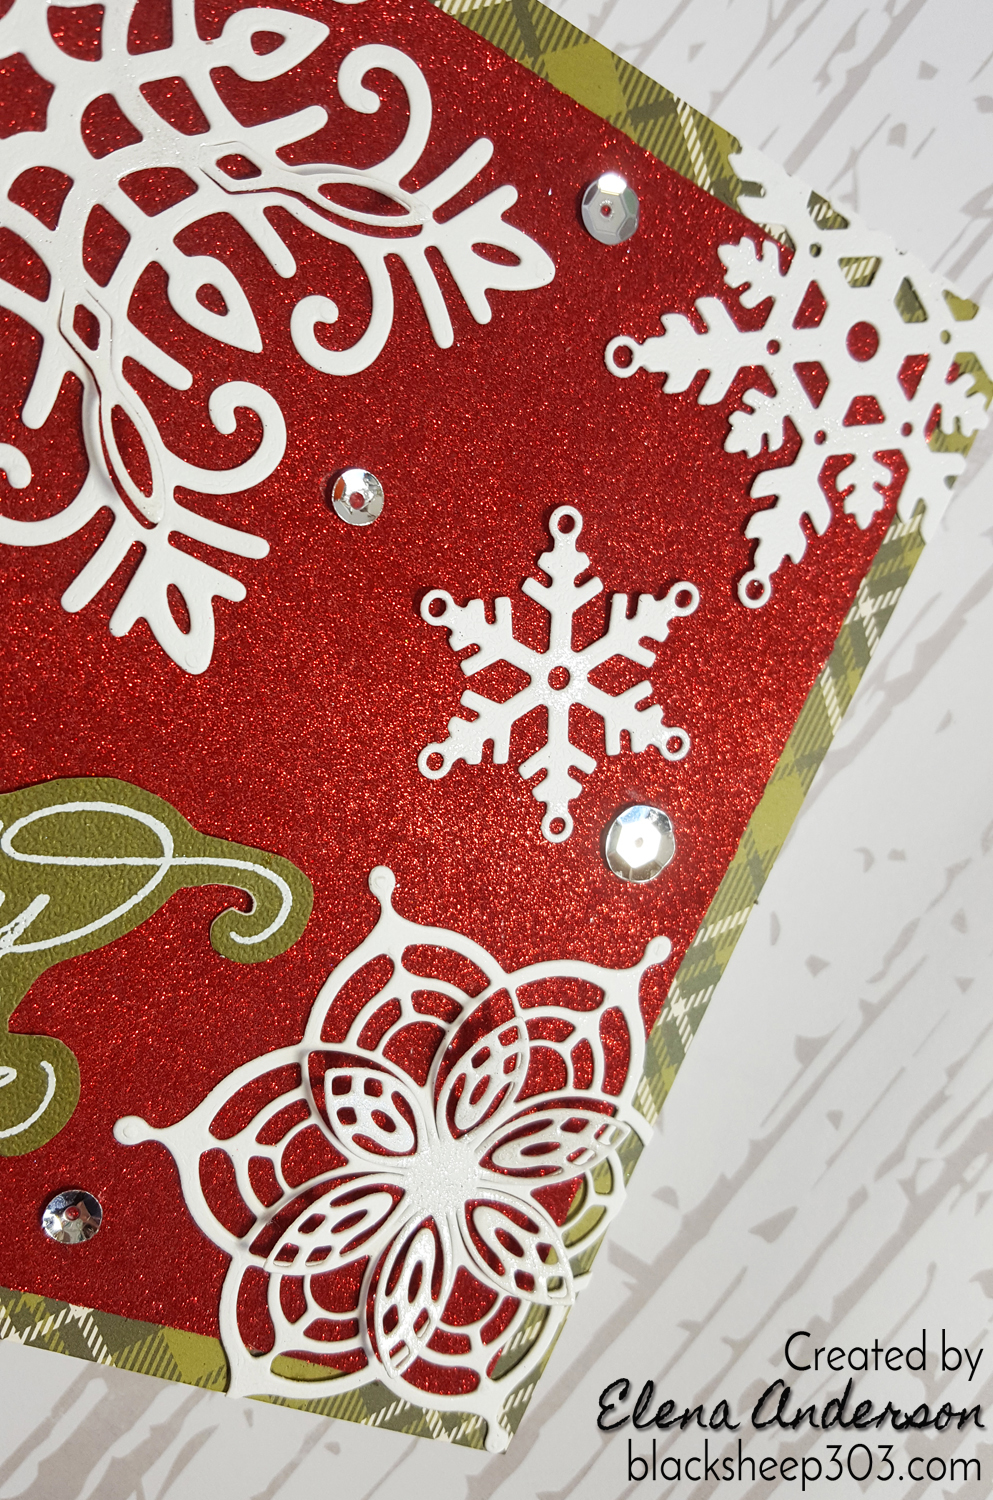 ChristmasSnowflakes-Detail5S